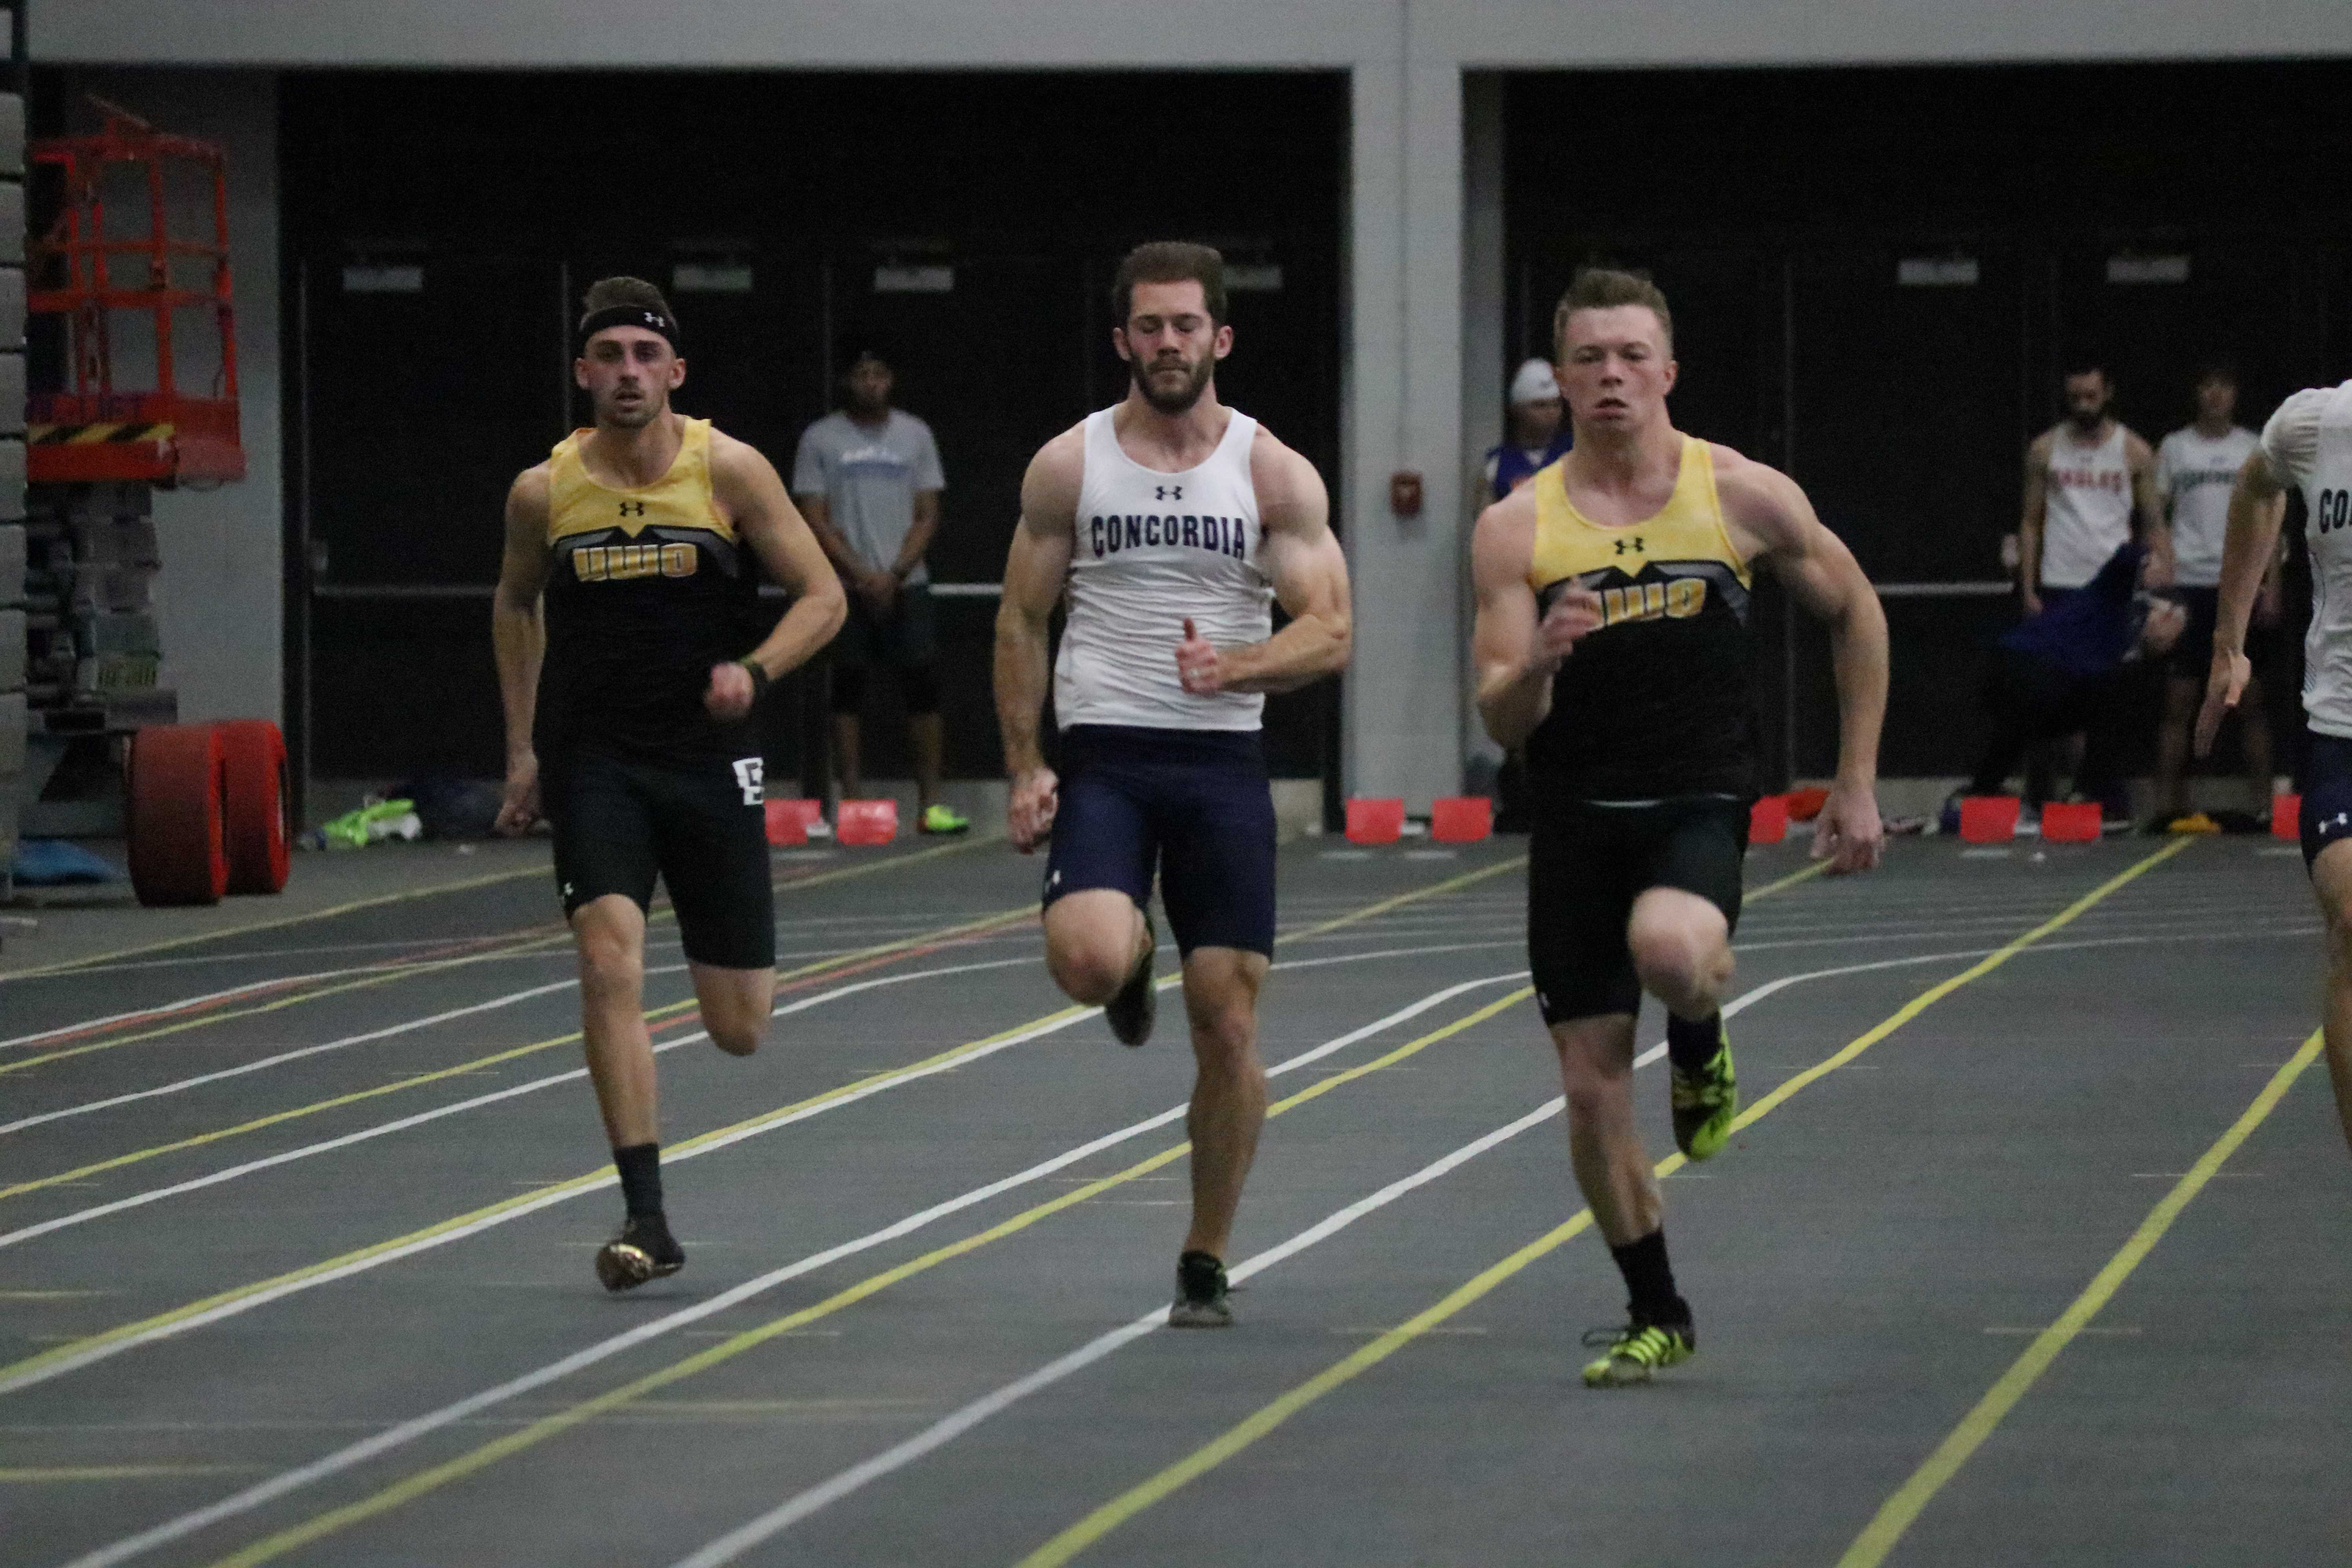 One strong start for Oshkosh